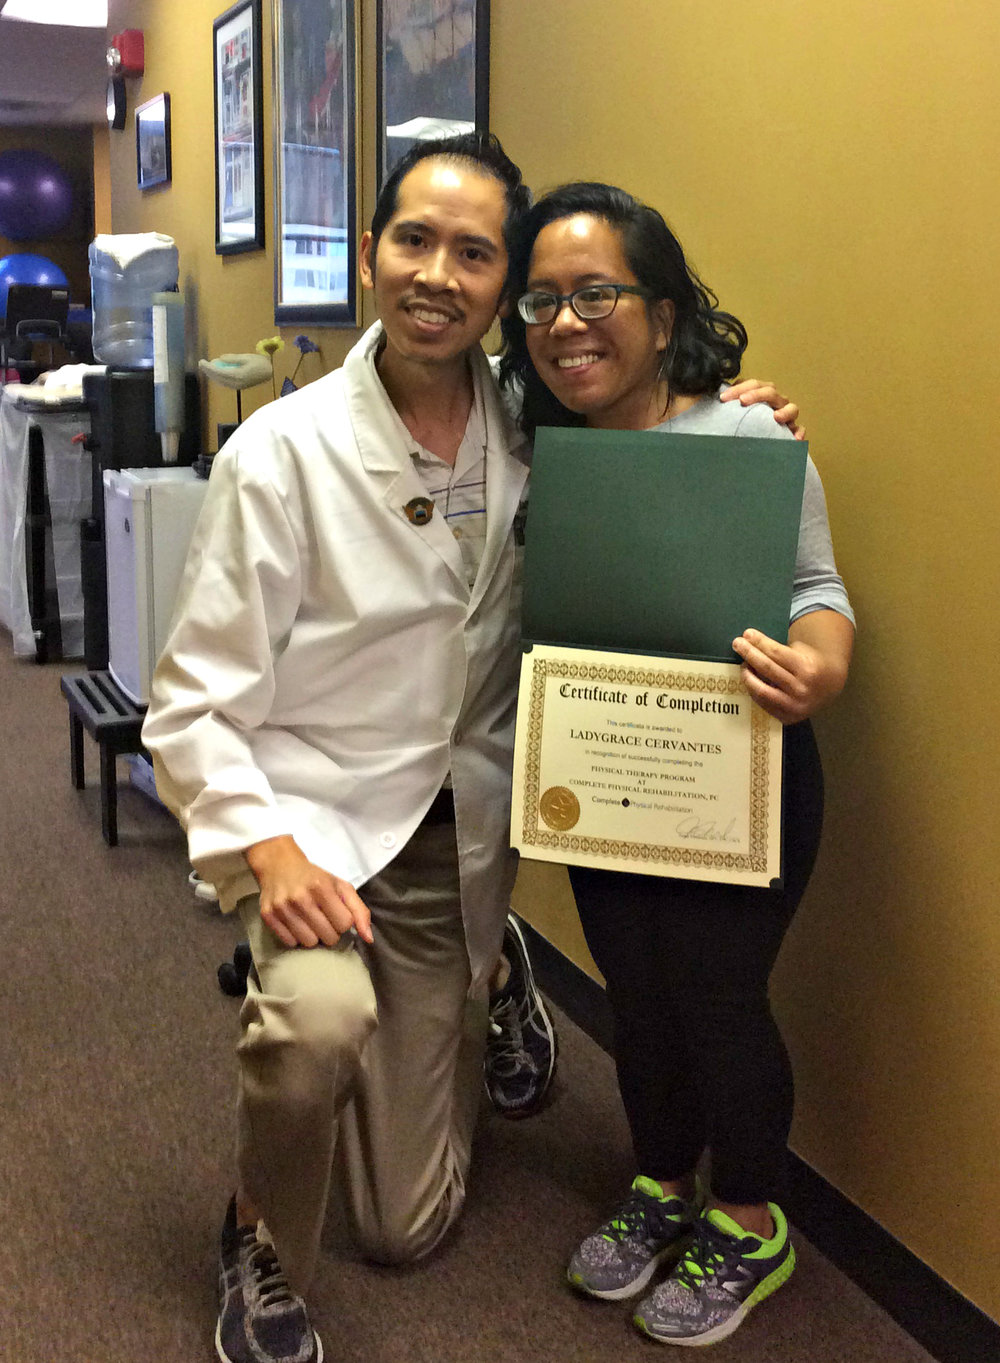 jersey city physical therapy specialist dr. james pumarada with knee pain patient ladygrace cervantes.jpg